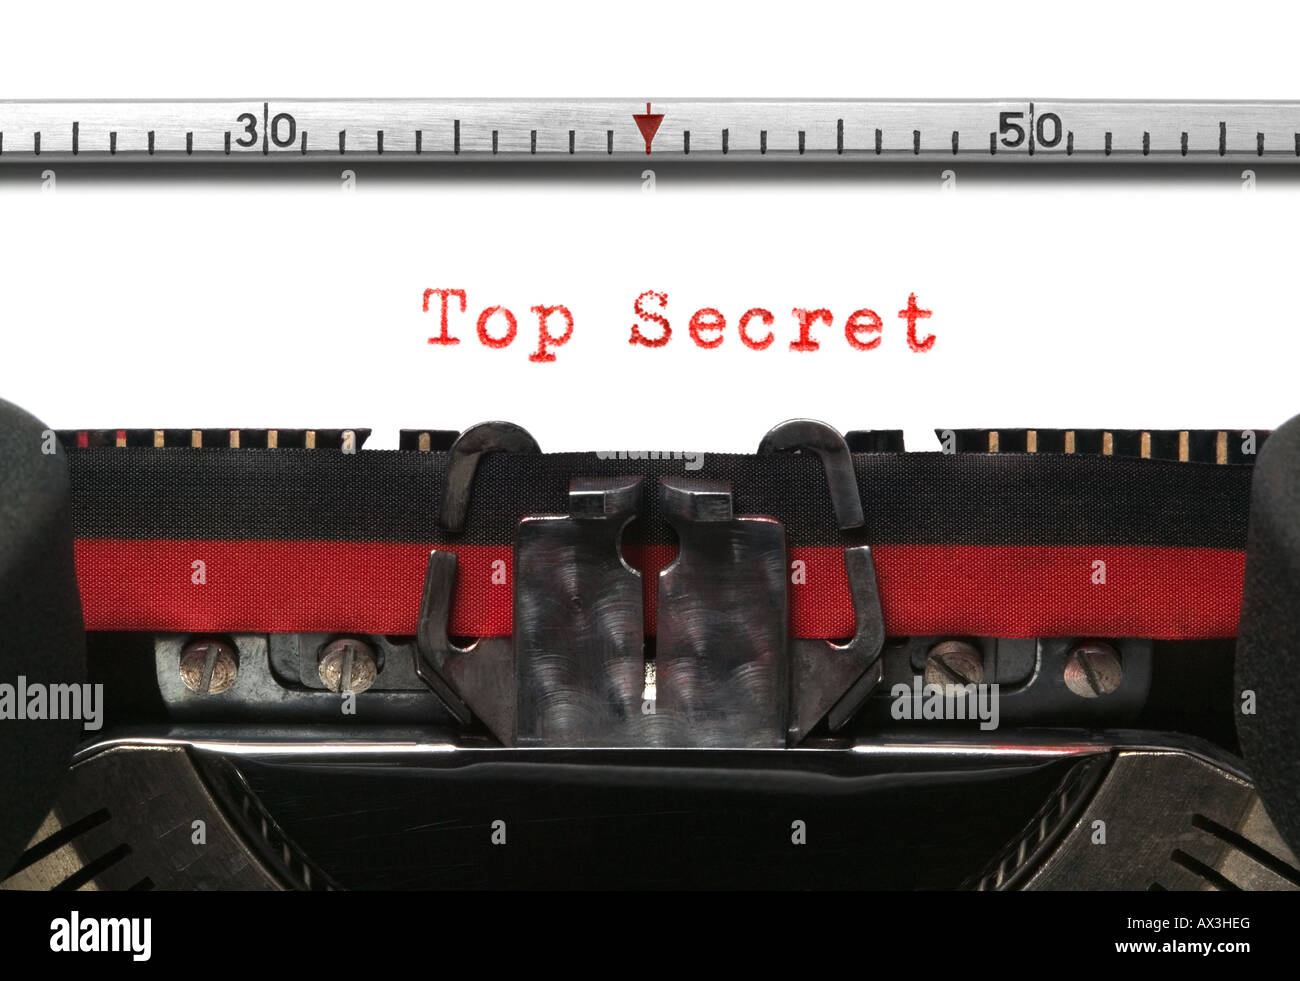 Top Secret on an old typewriter in genuine typescript - Stock Image